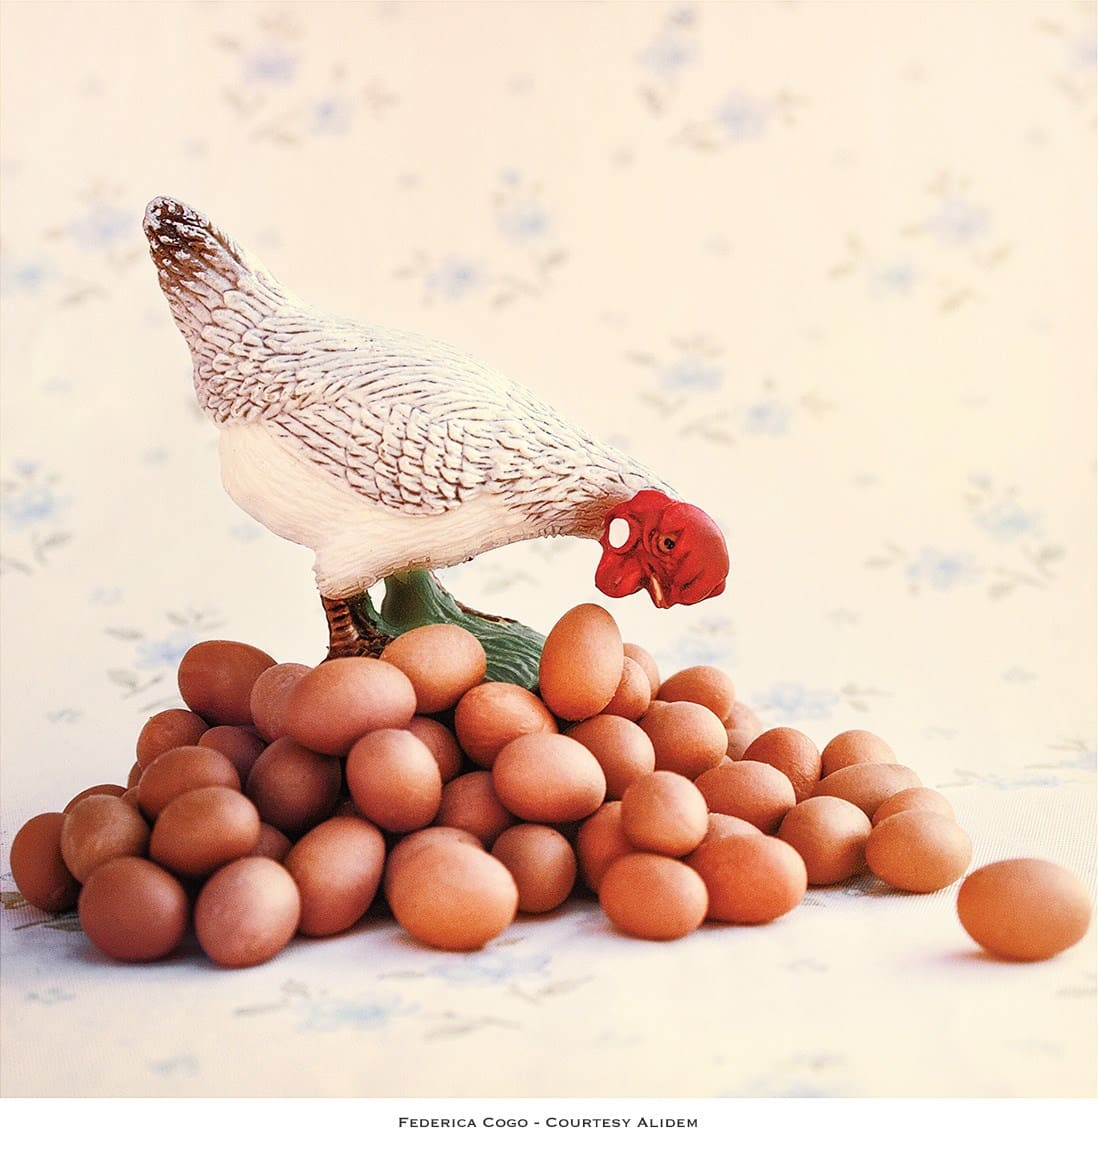 Federica Cogo, Nature morte